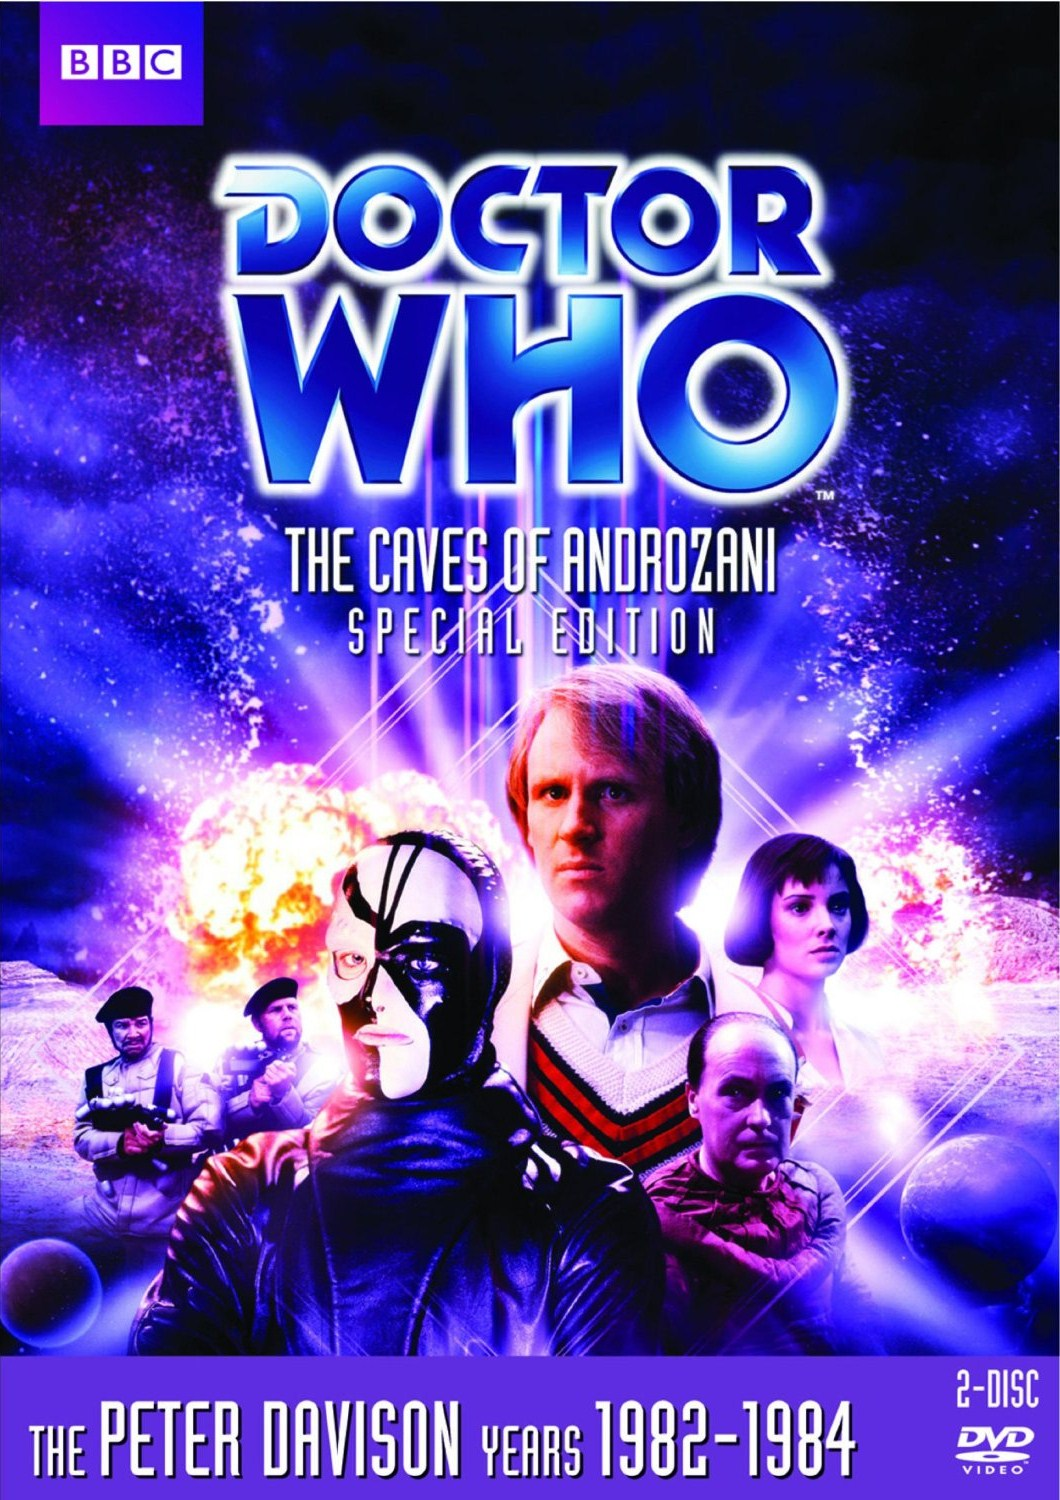 Doctor Who - The Caves of Androzani movie